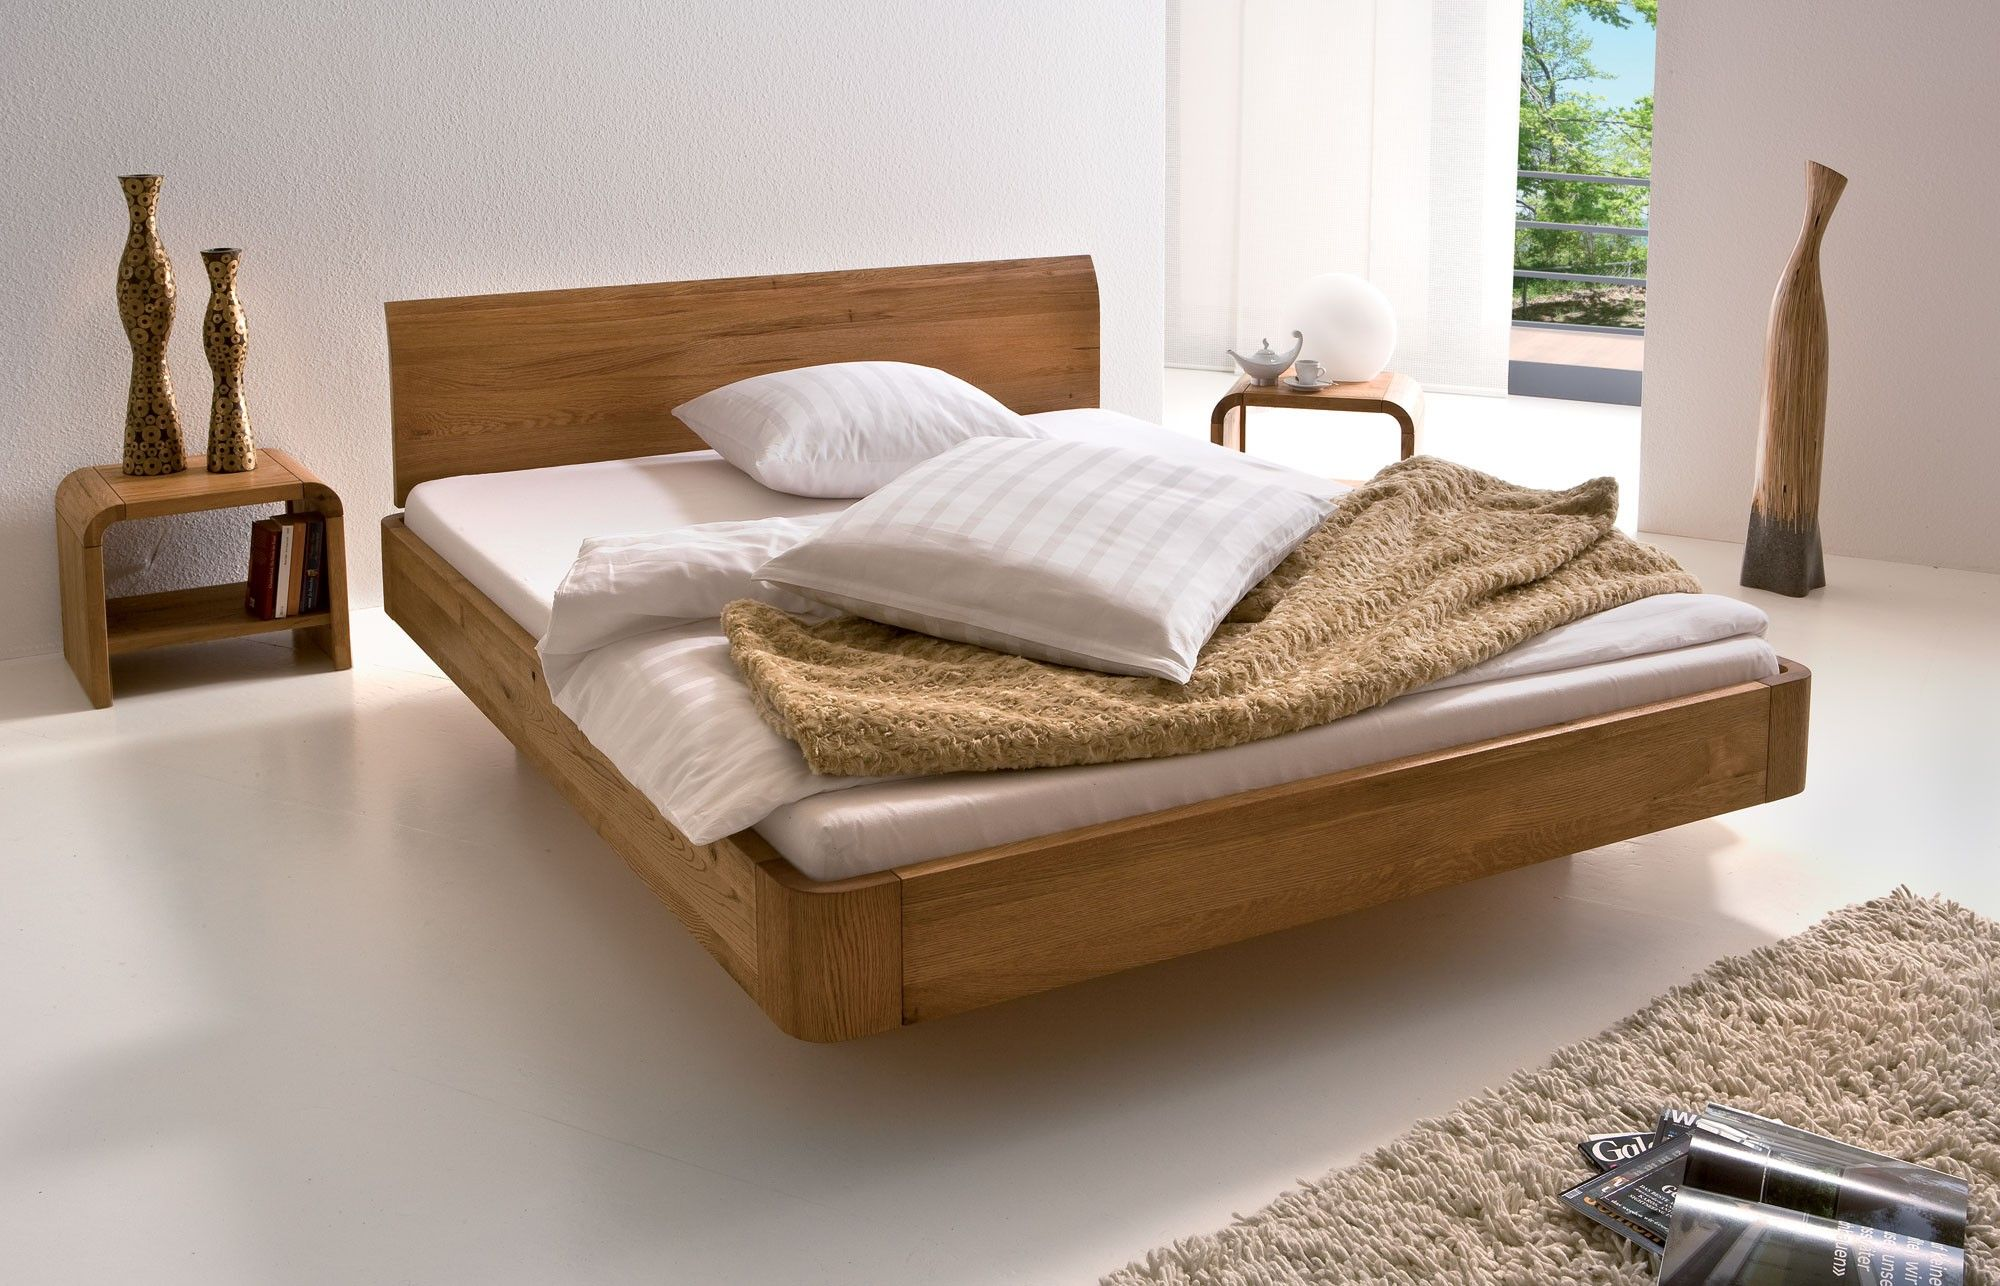 hasena airon lisio  solid oak bed  solid oak beds oak beds and  - hasena airon lisio  solid oak bed